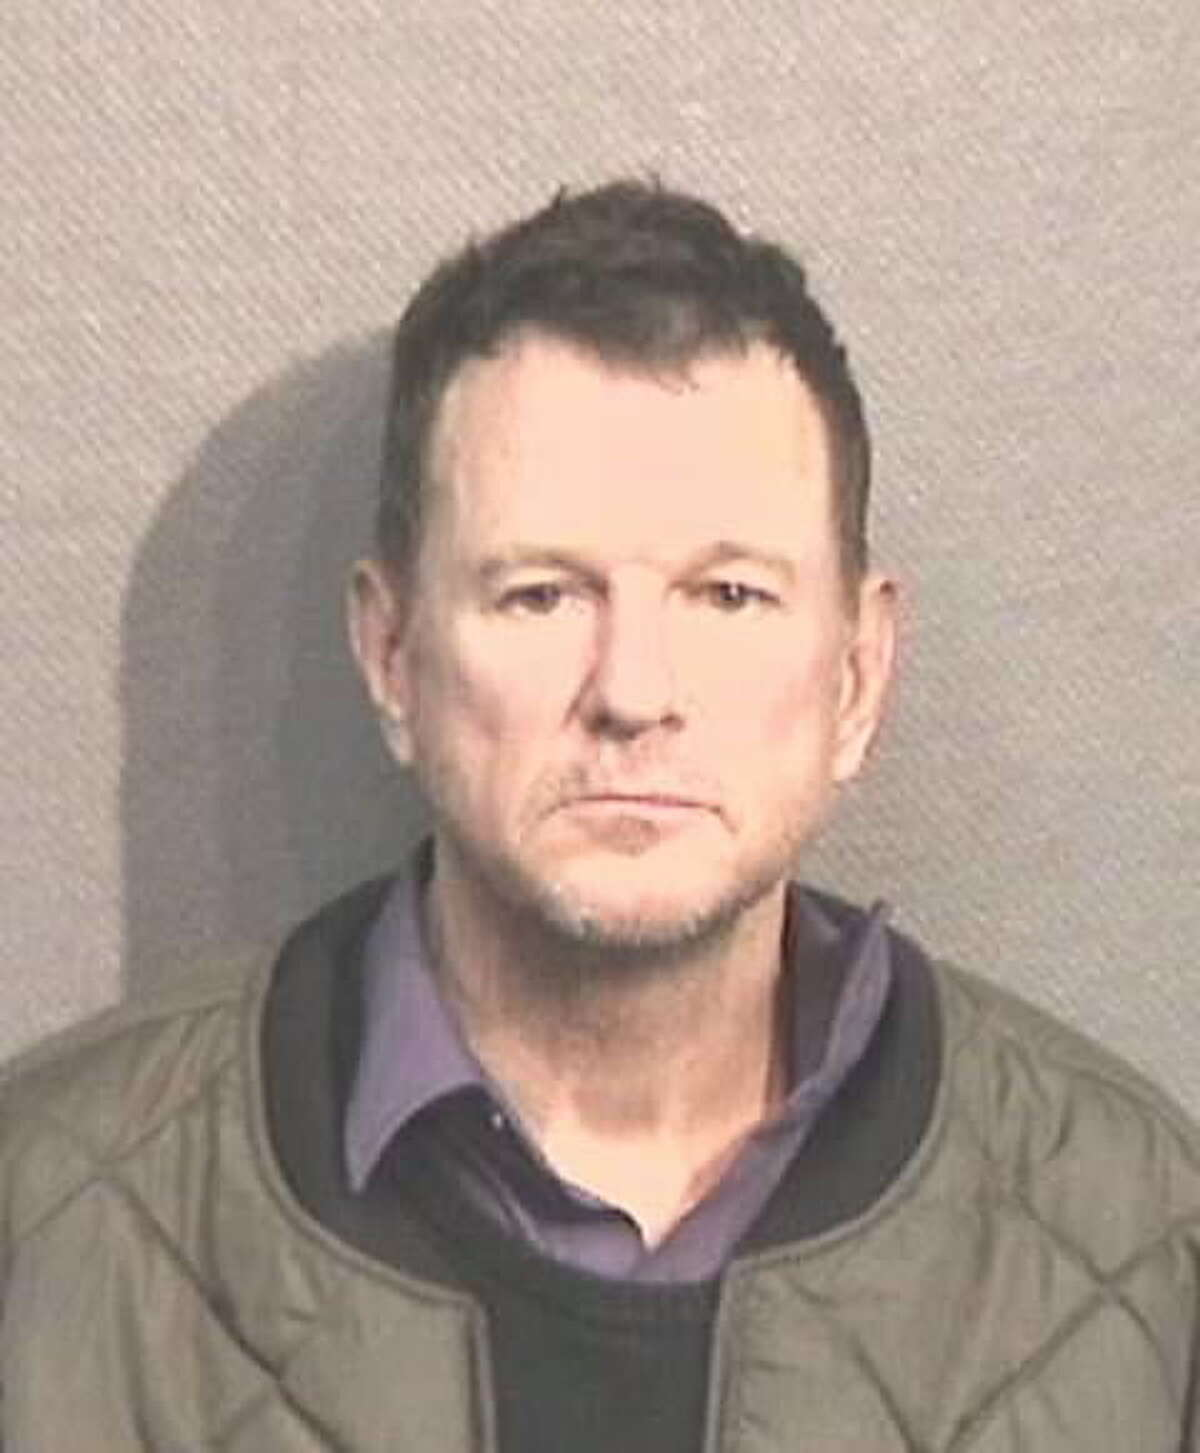 Thomas Edward Loyd, 55, was in the Houston Police Department Southeast Patrol Station jail in in the 8300 block of Mykawa Road on a felony theft charge from Dec. 21, 2018, according to court records. He was found dead inside the jail Sunday, Dec. 30, 2018.